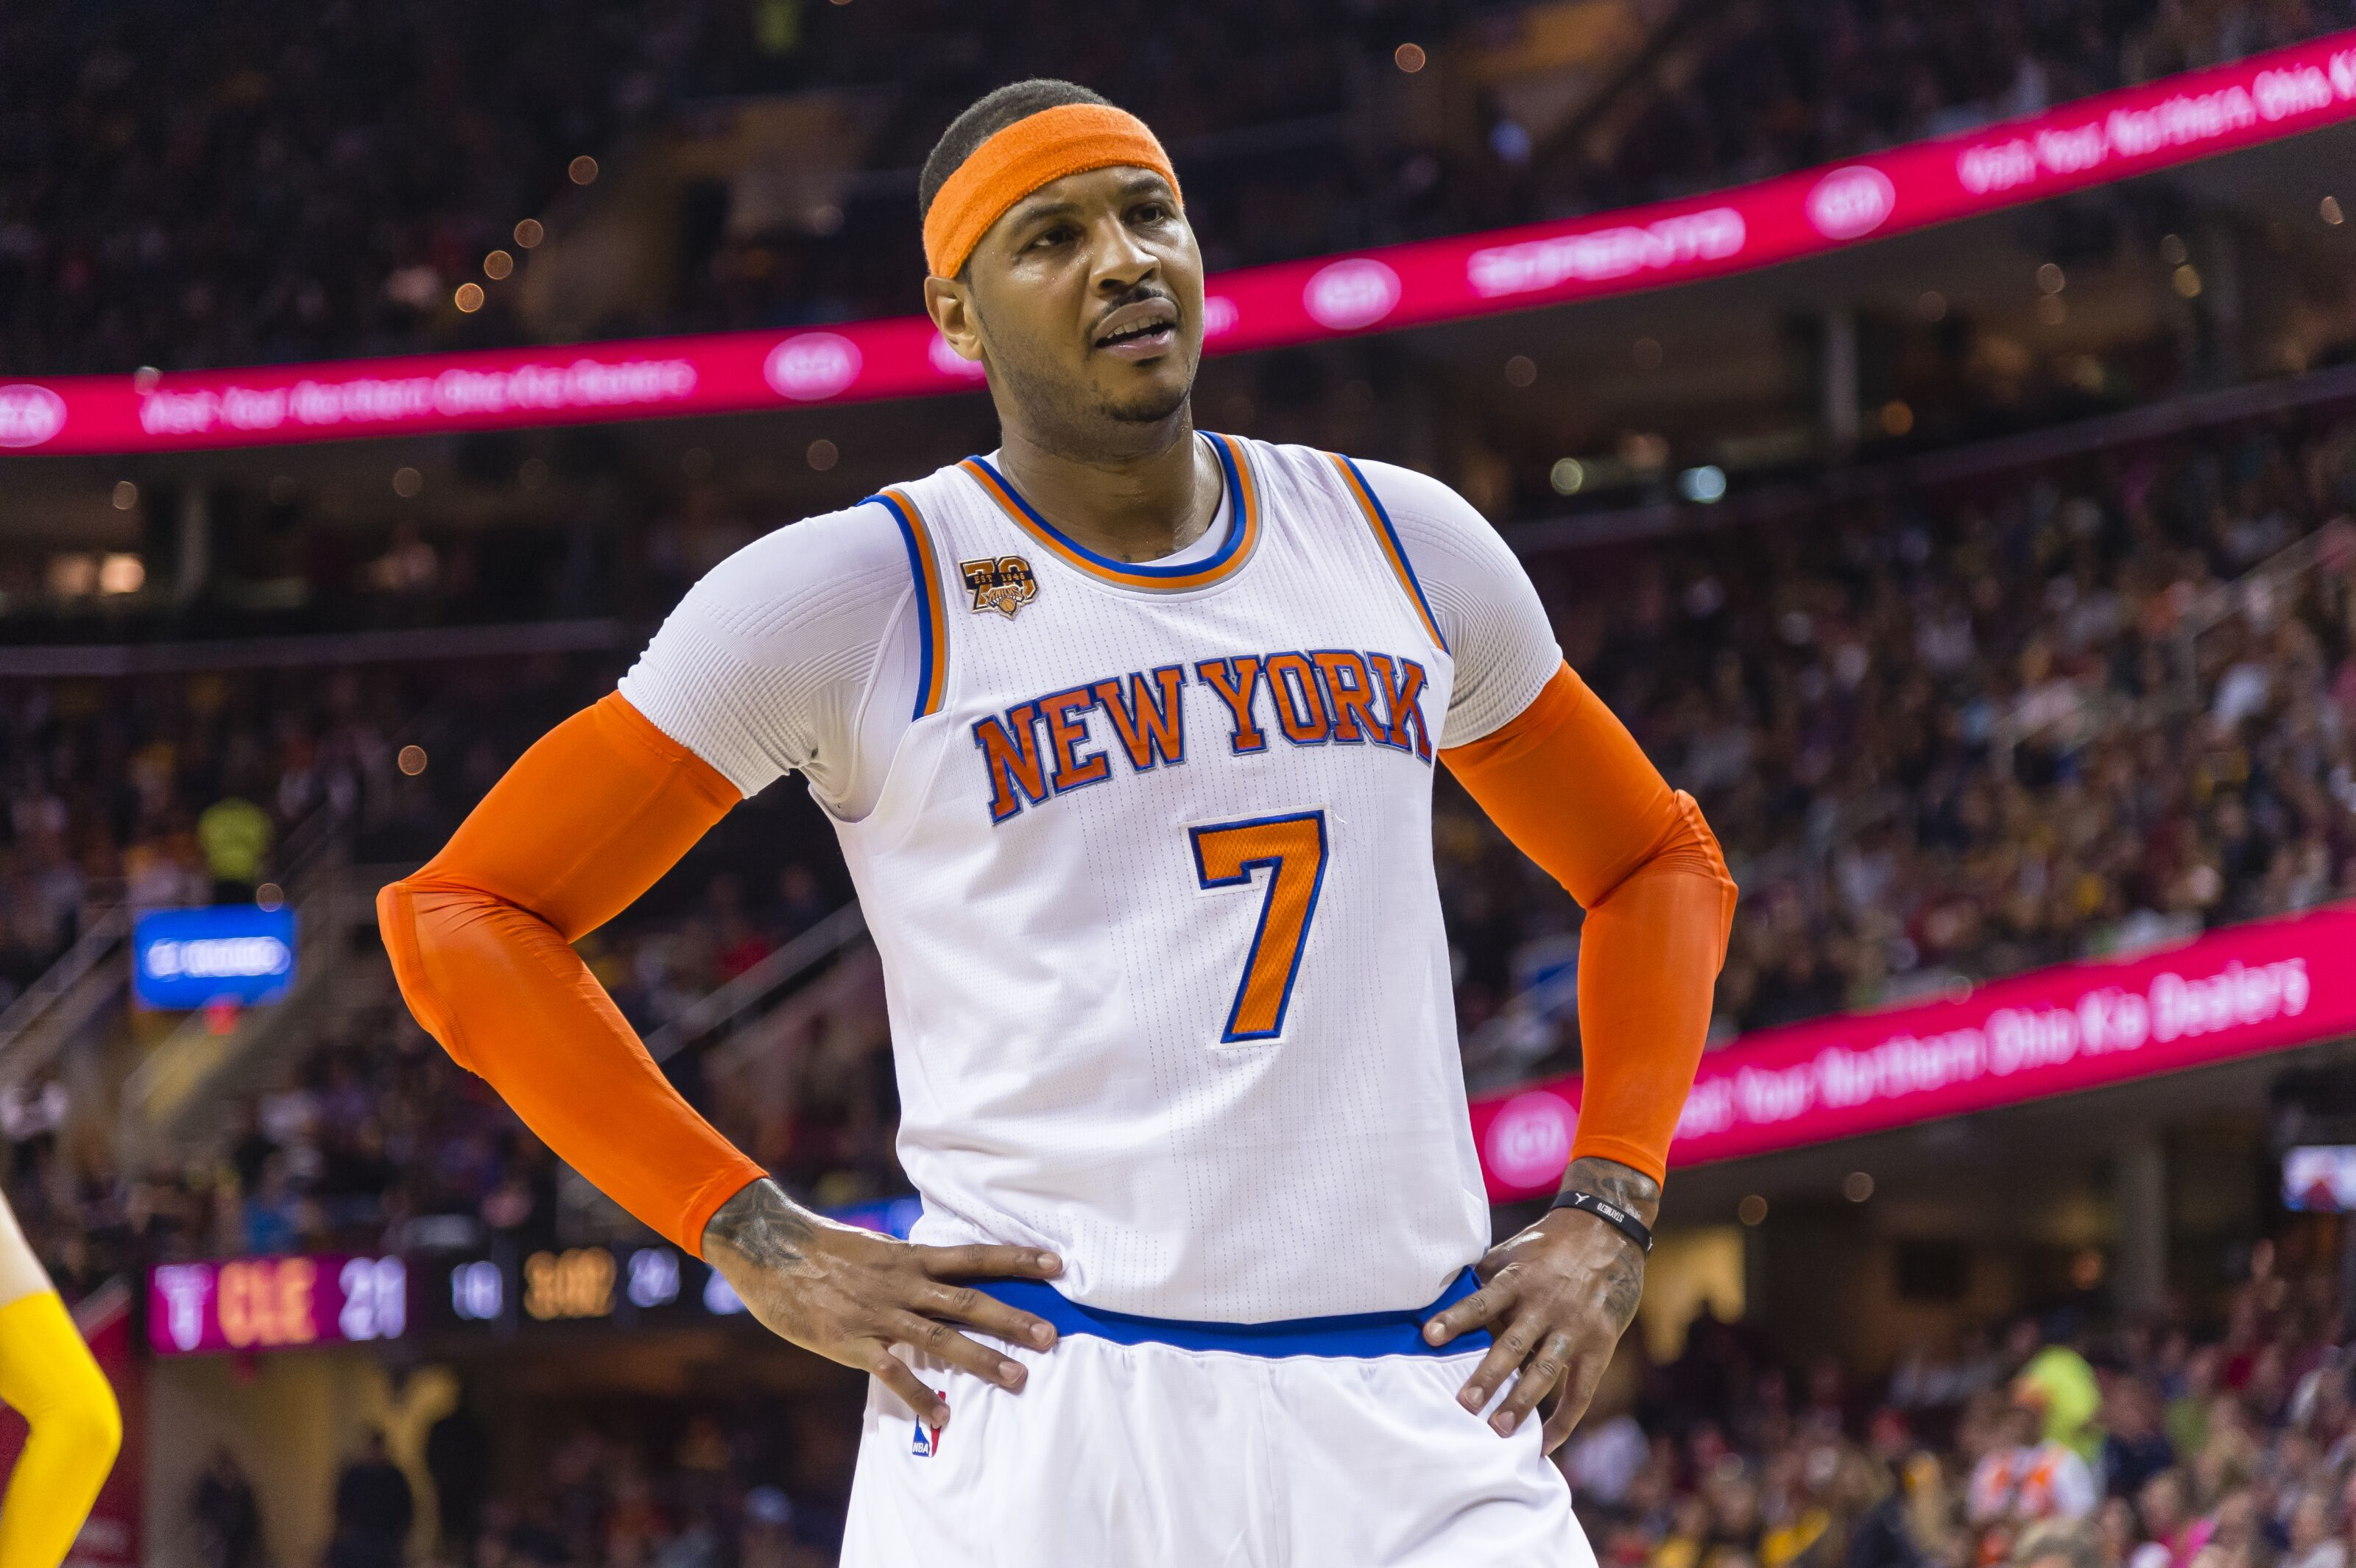 Carmelo Anthony's decline on offense and defense will spell the end to his career